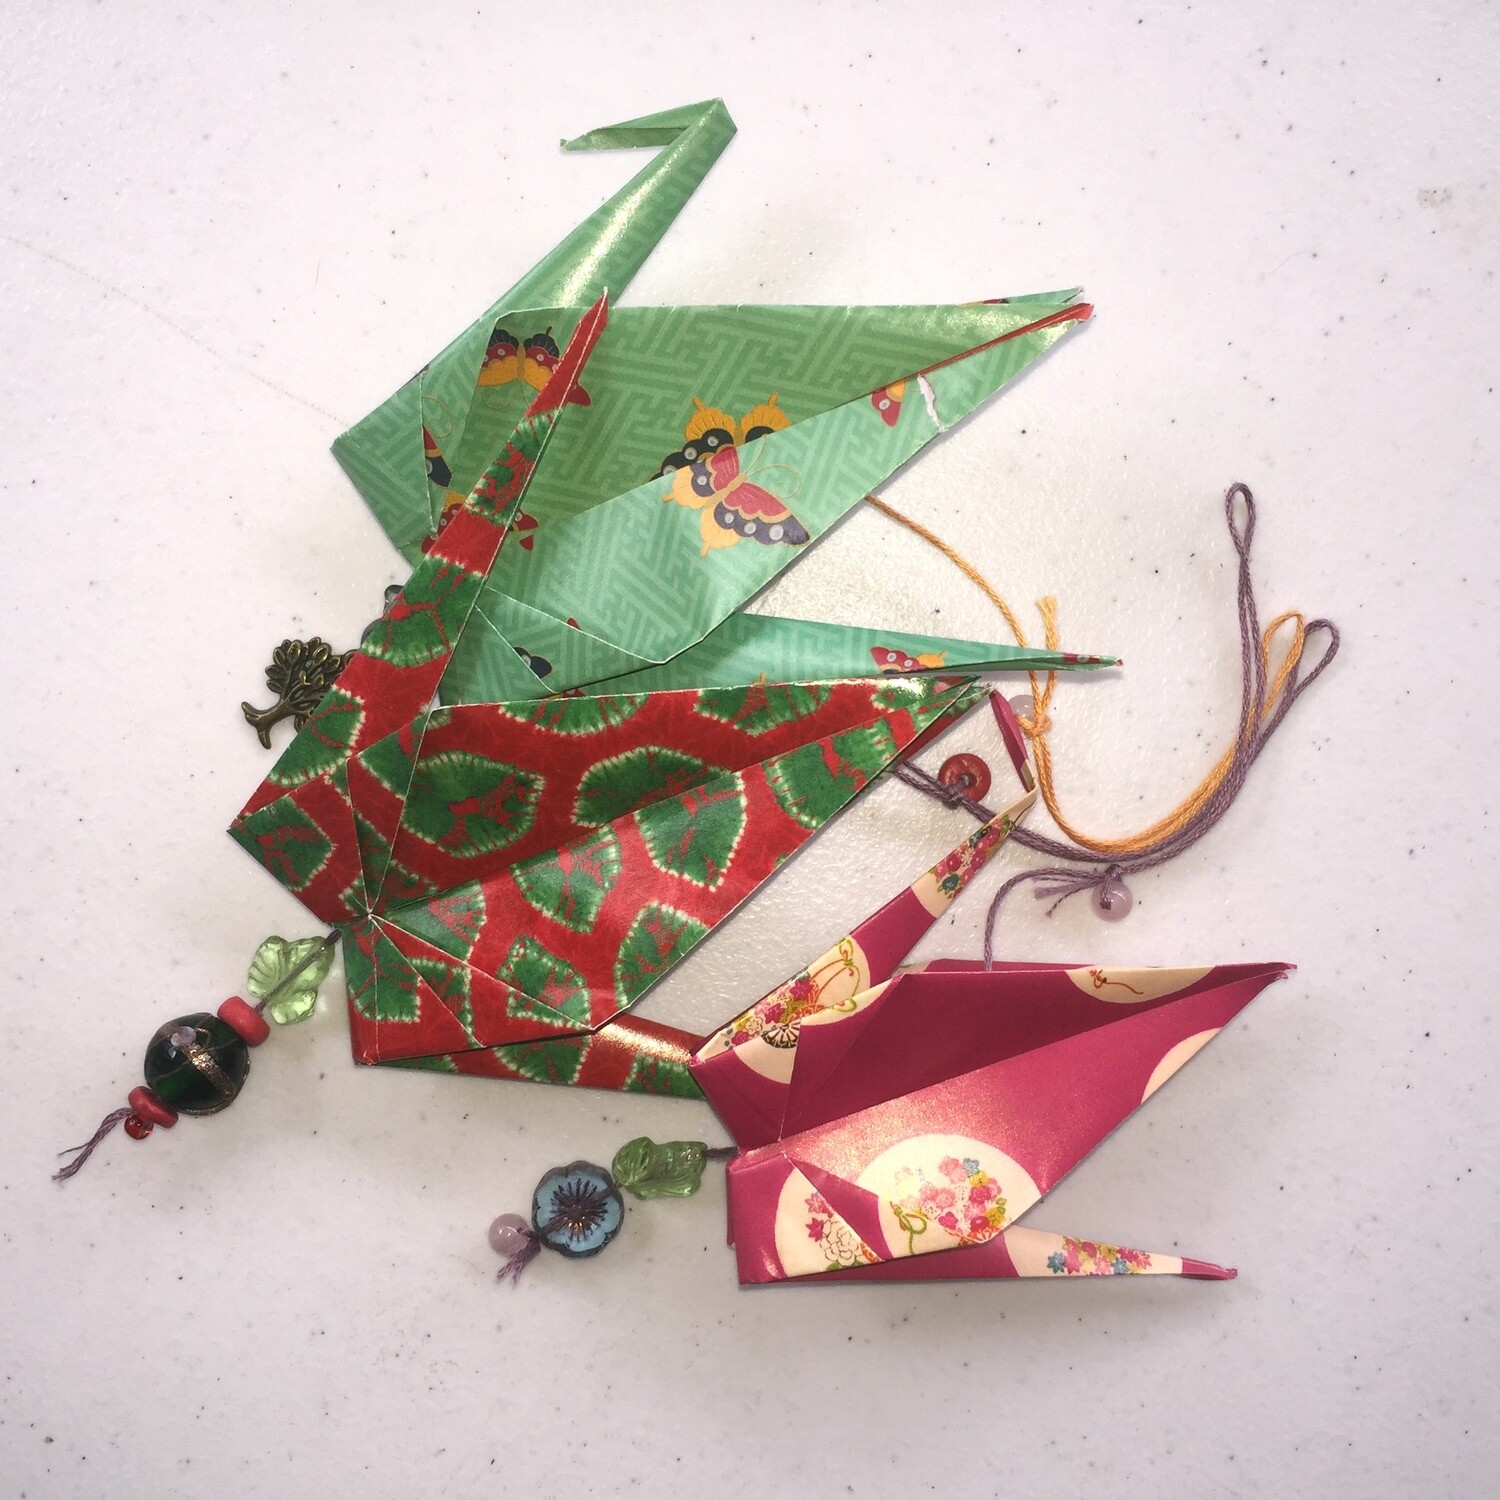 Origami Cranes Handcrafted at Great Tree